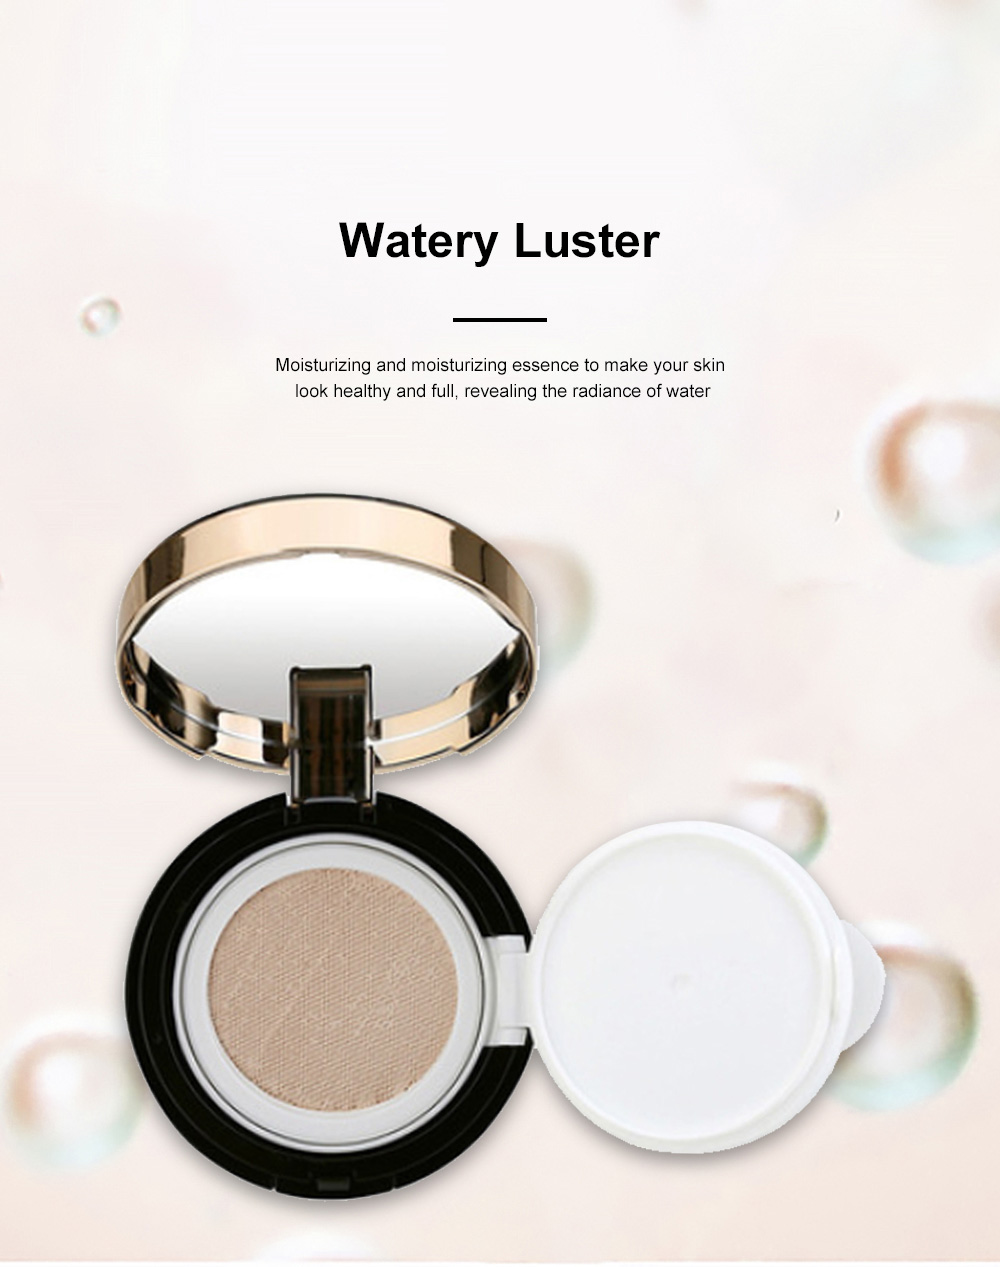 Skin Rejuvenating Air Cushion Daily Color Correcting CC Cream Send Replacement Waterproof Moisturizing Concealer Nude Makeup Cream 6